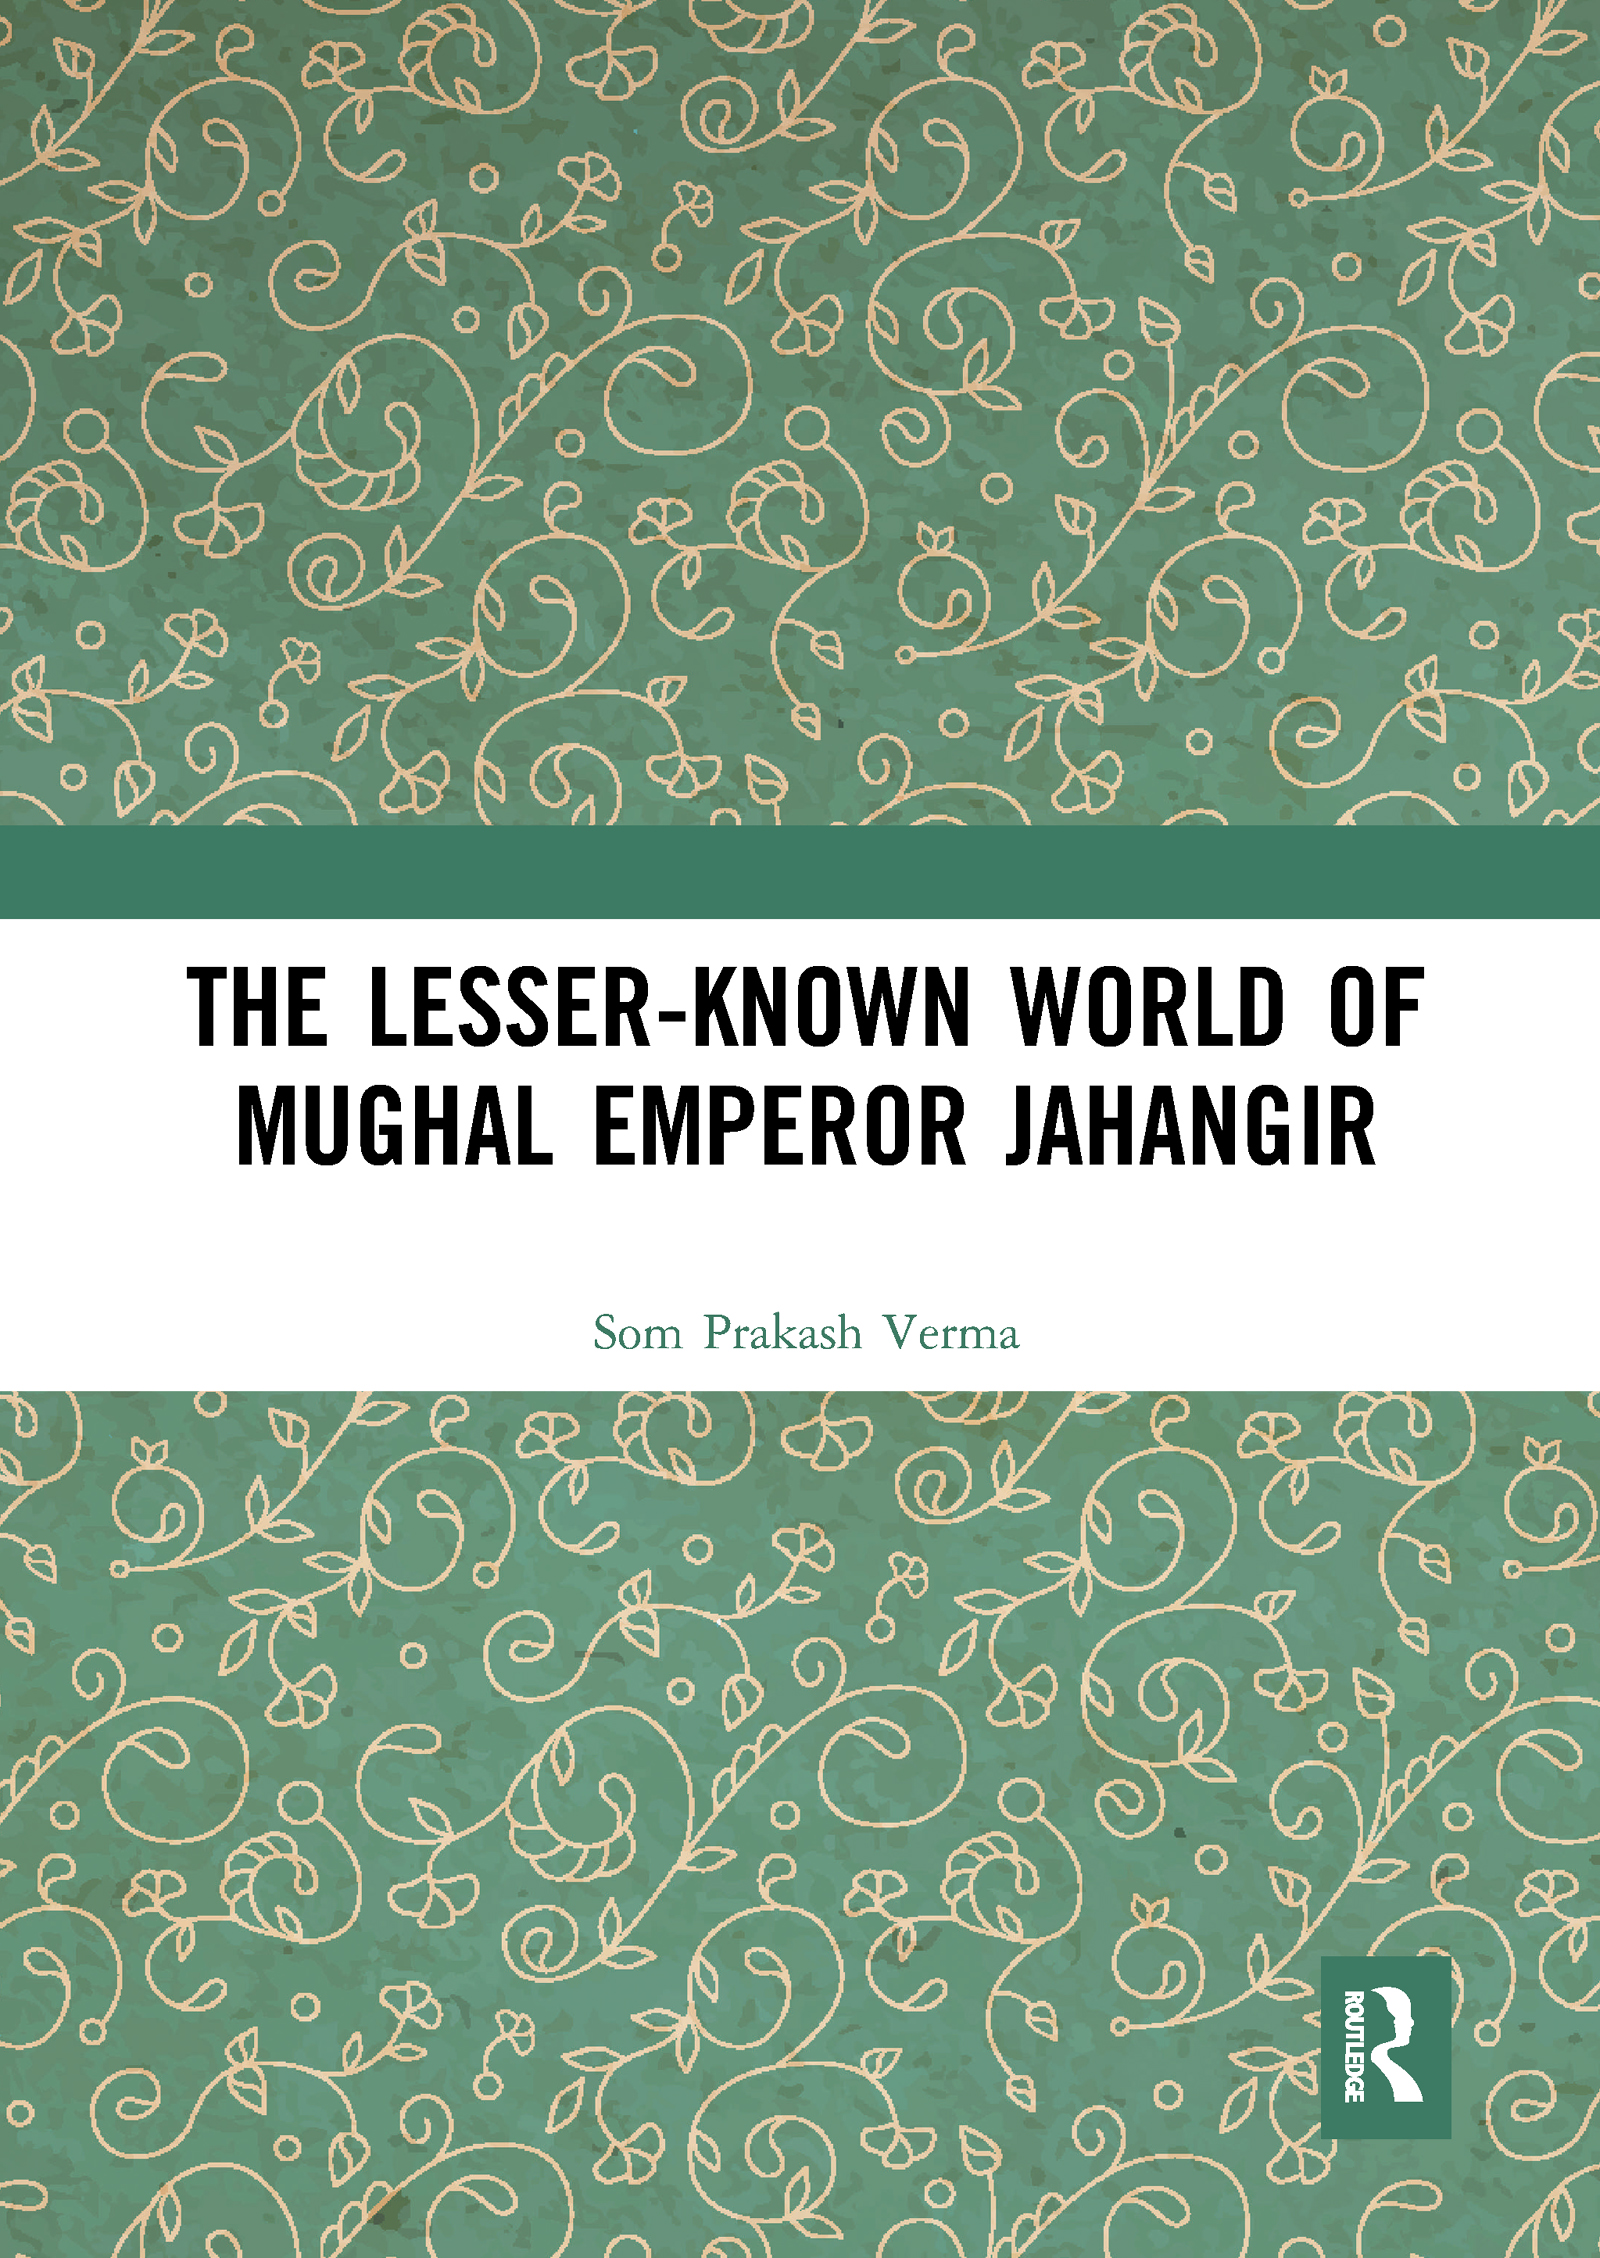 The Lesser-known World of Mughal Emperor Jahangir